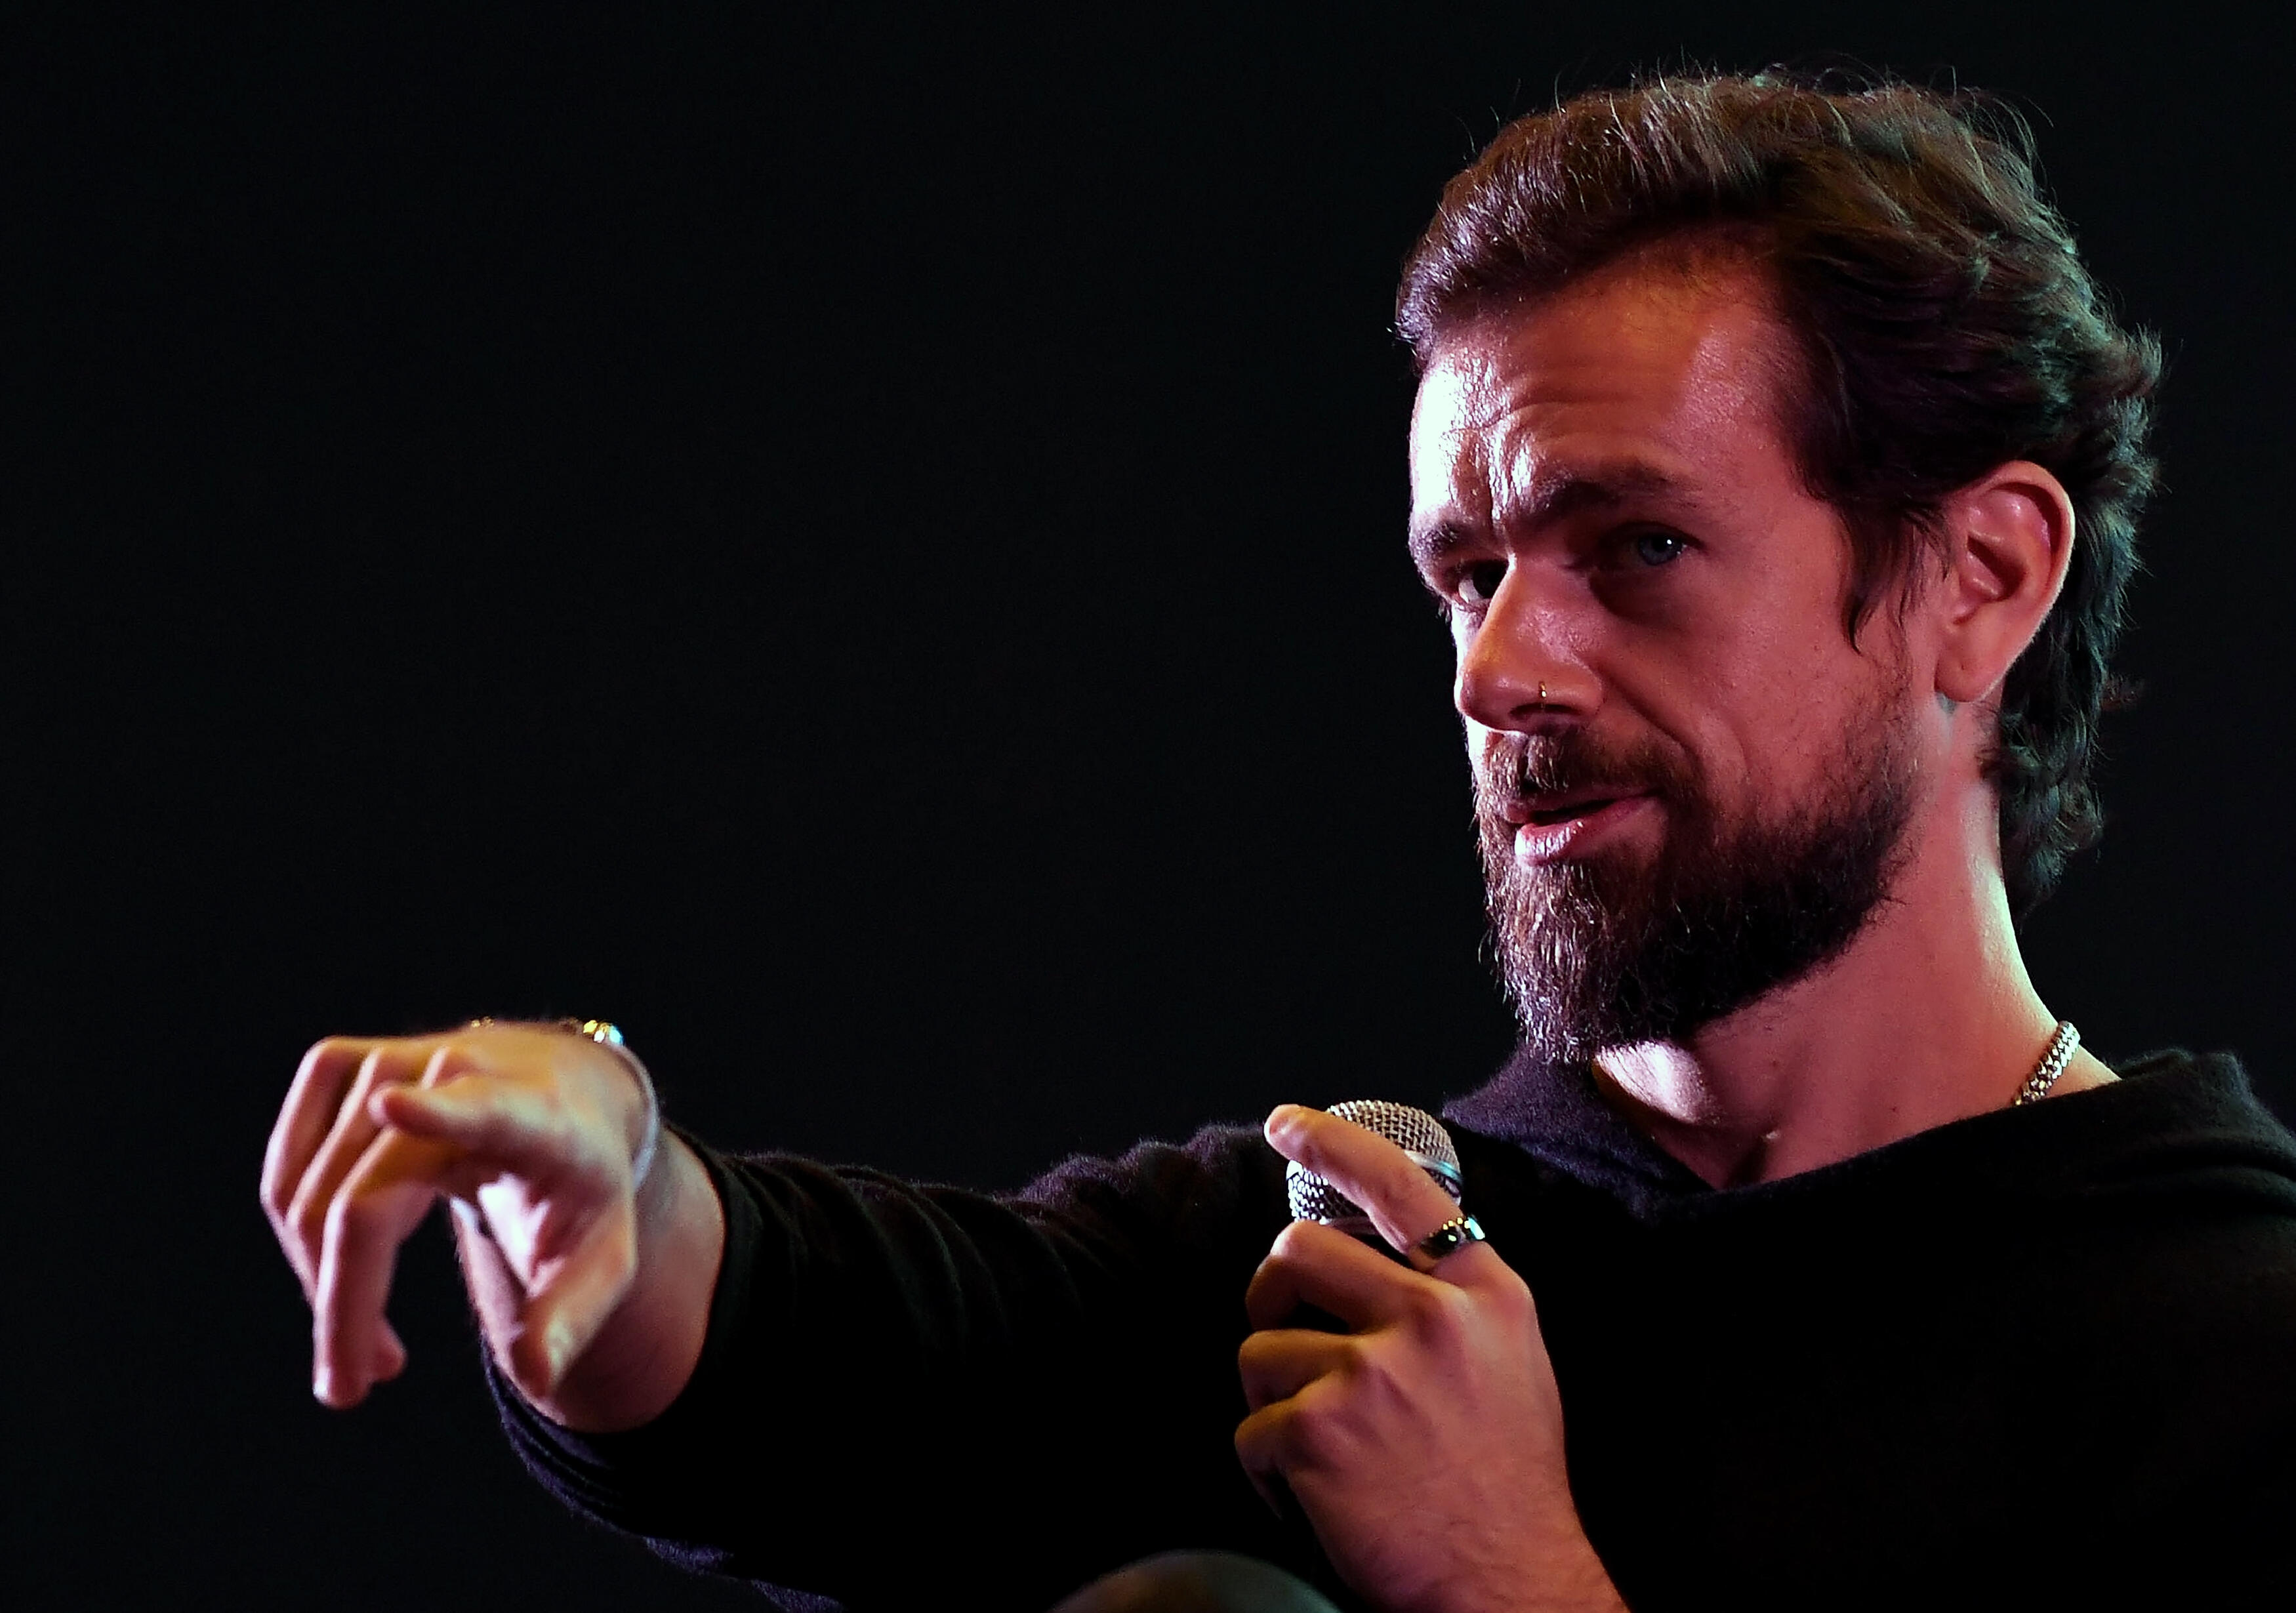 Twitter CEO Jack Dorsey explains his vision for social media's future